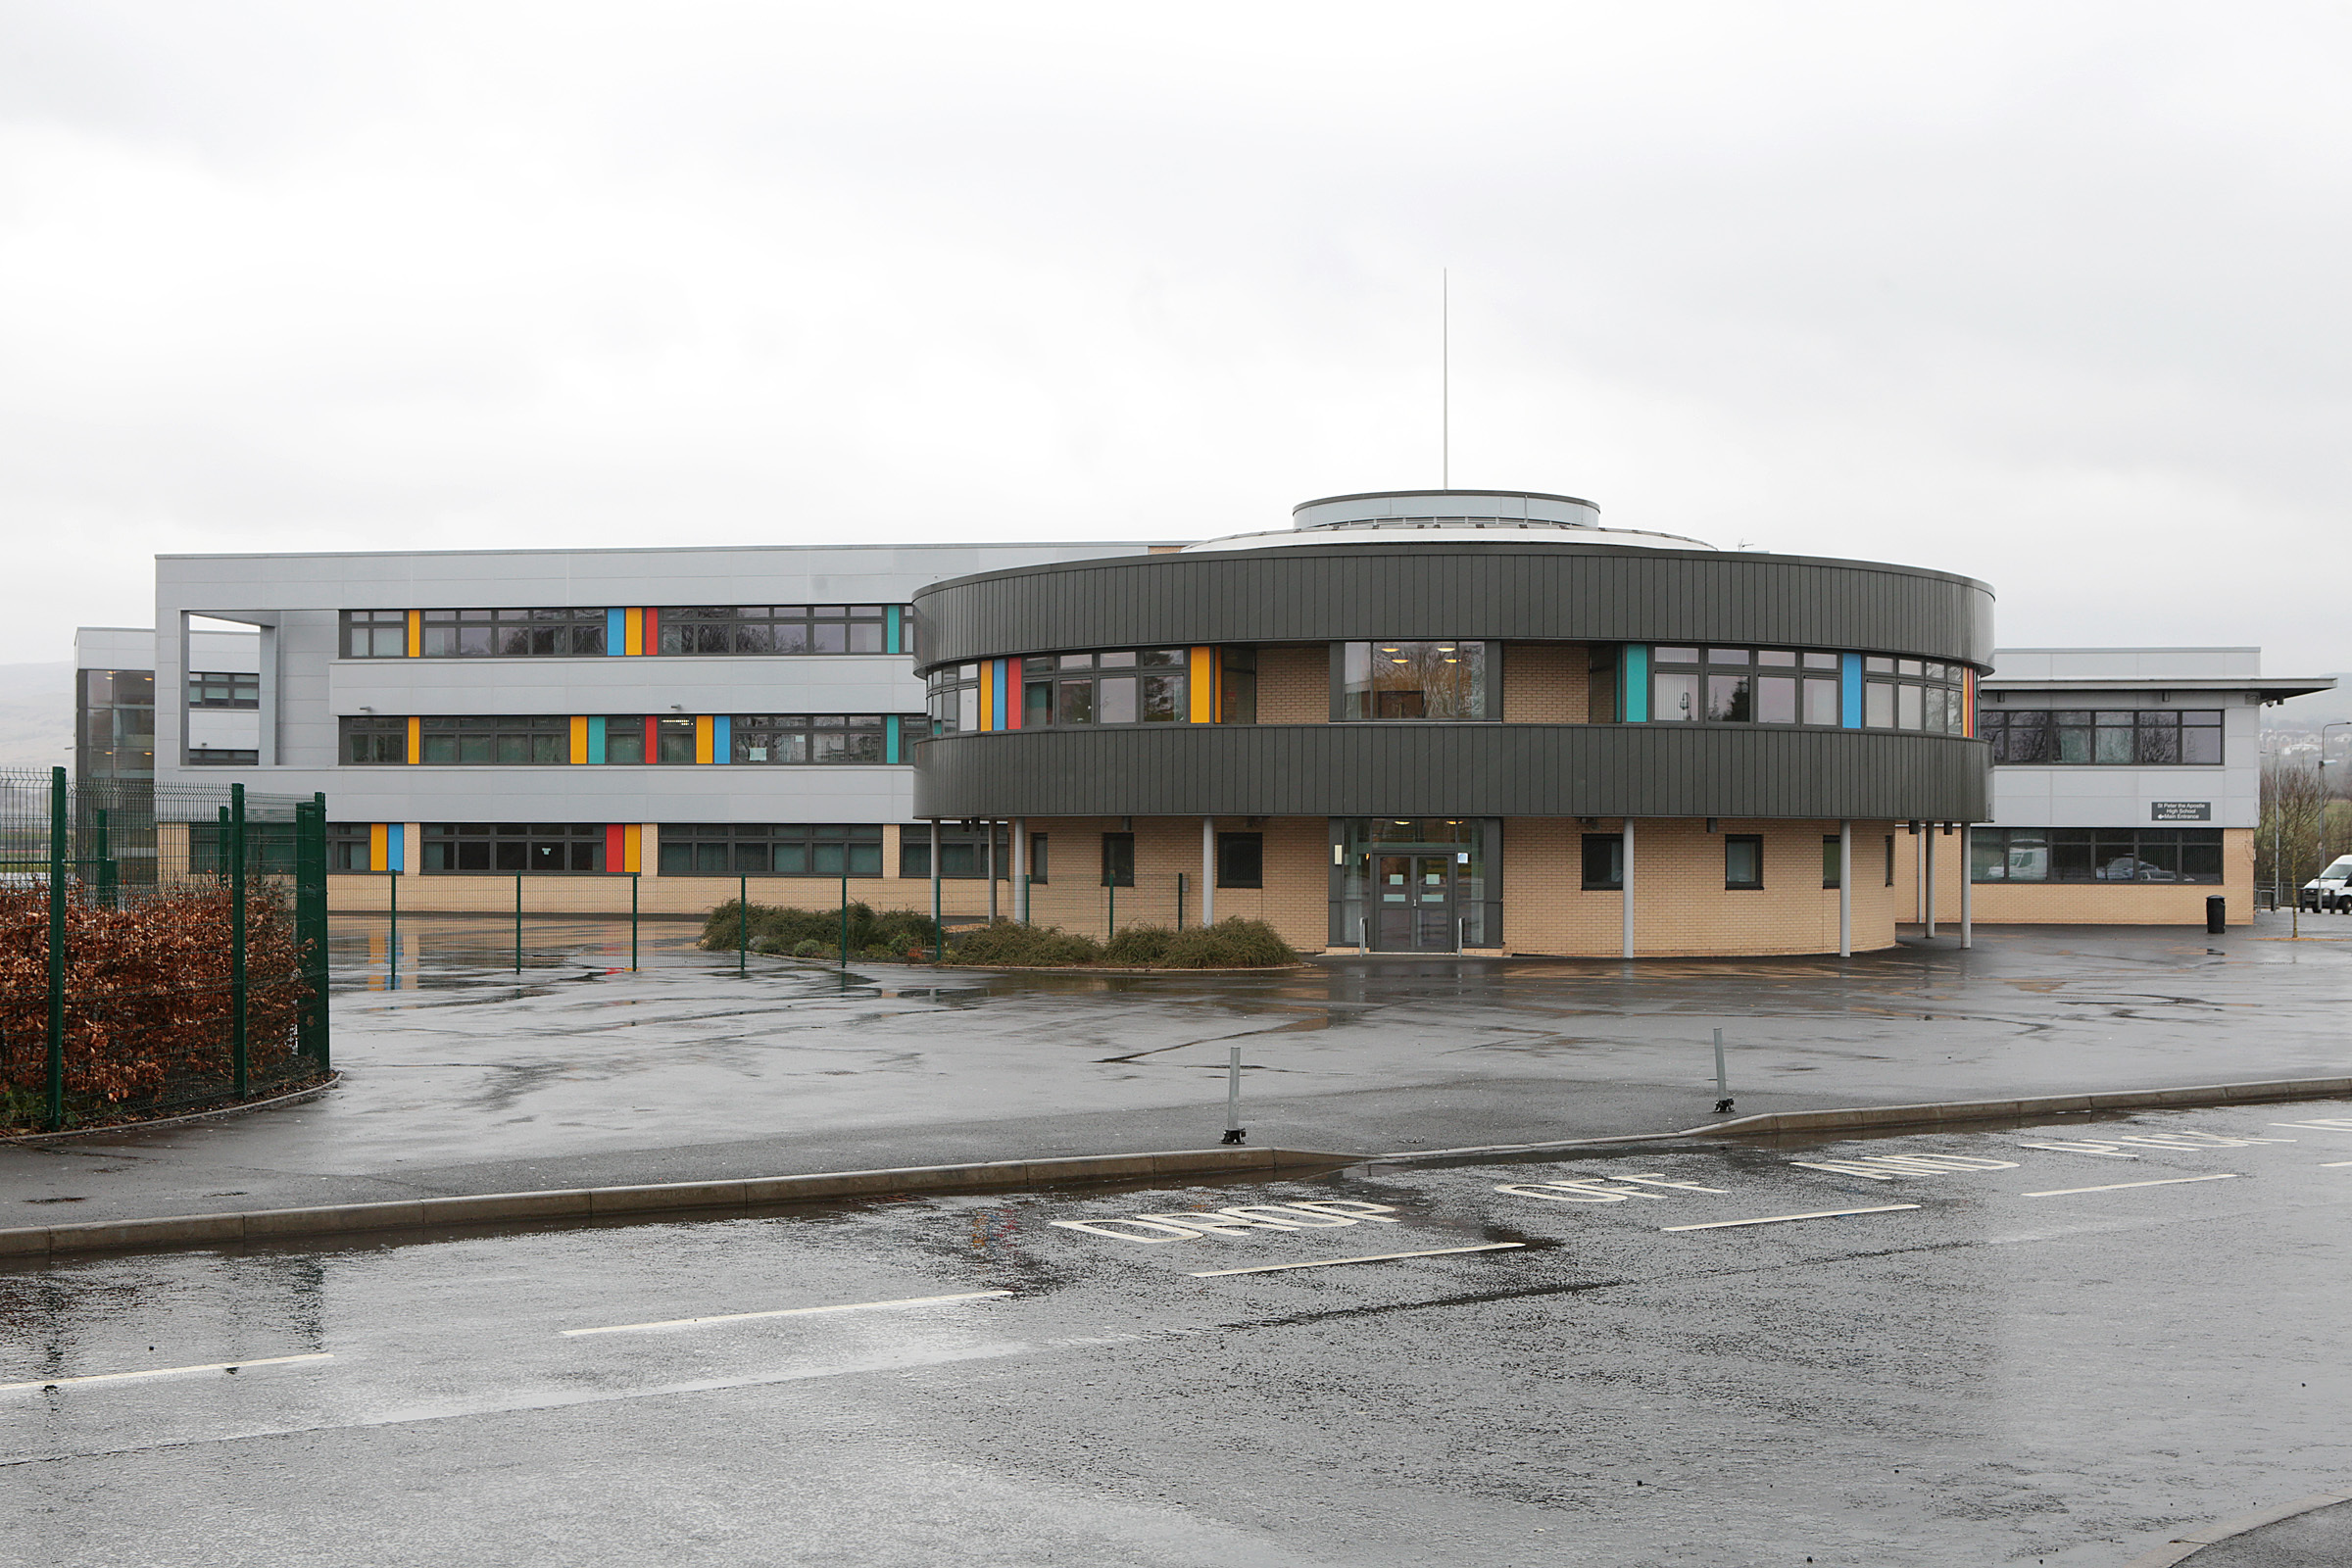 Fewer Clydebank children leave area schools and go on to 'positive destinations'